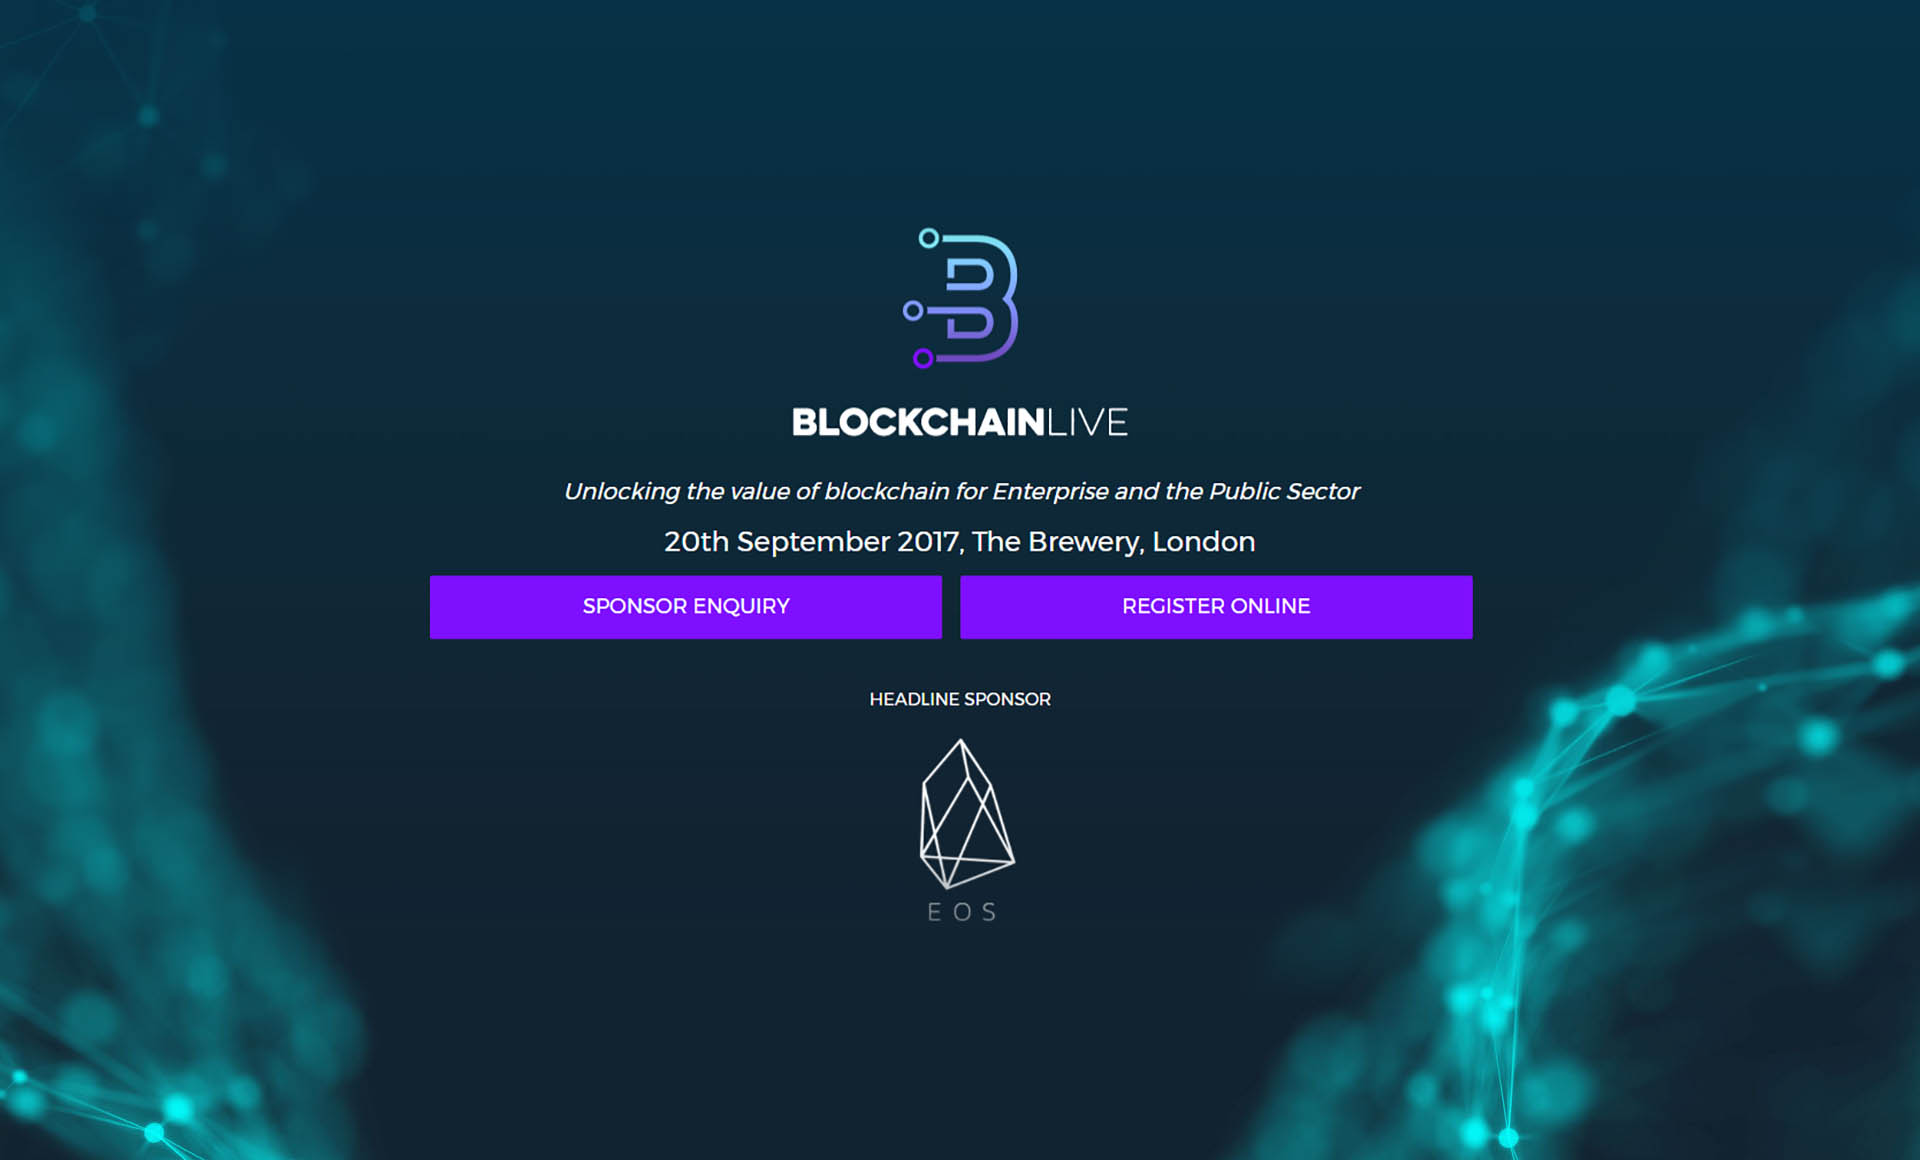 Blockchain Live Confirms Headline Partner Sponsor Block.on